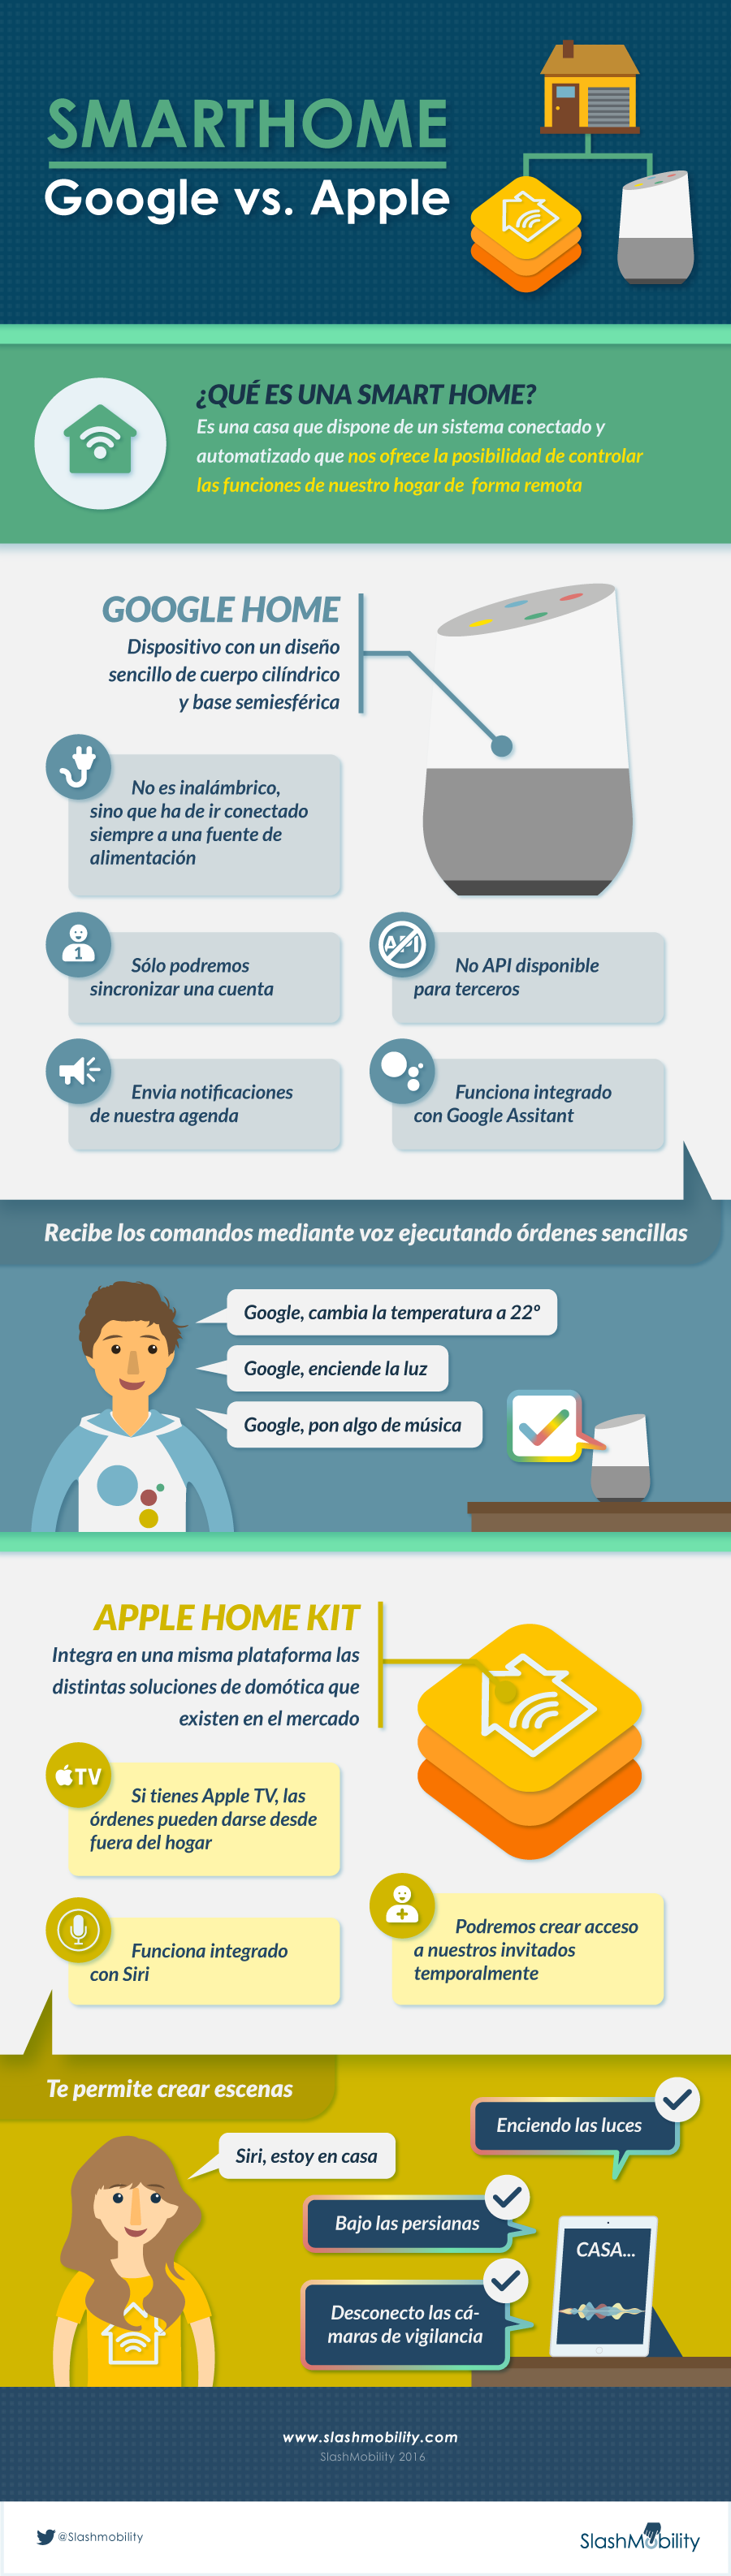 smarthome google vs apple infografia infographic tech. Black Bedroom Furniture Sets. Home Design Ideas